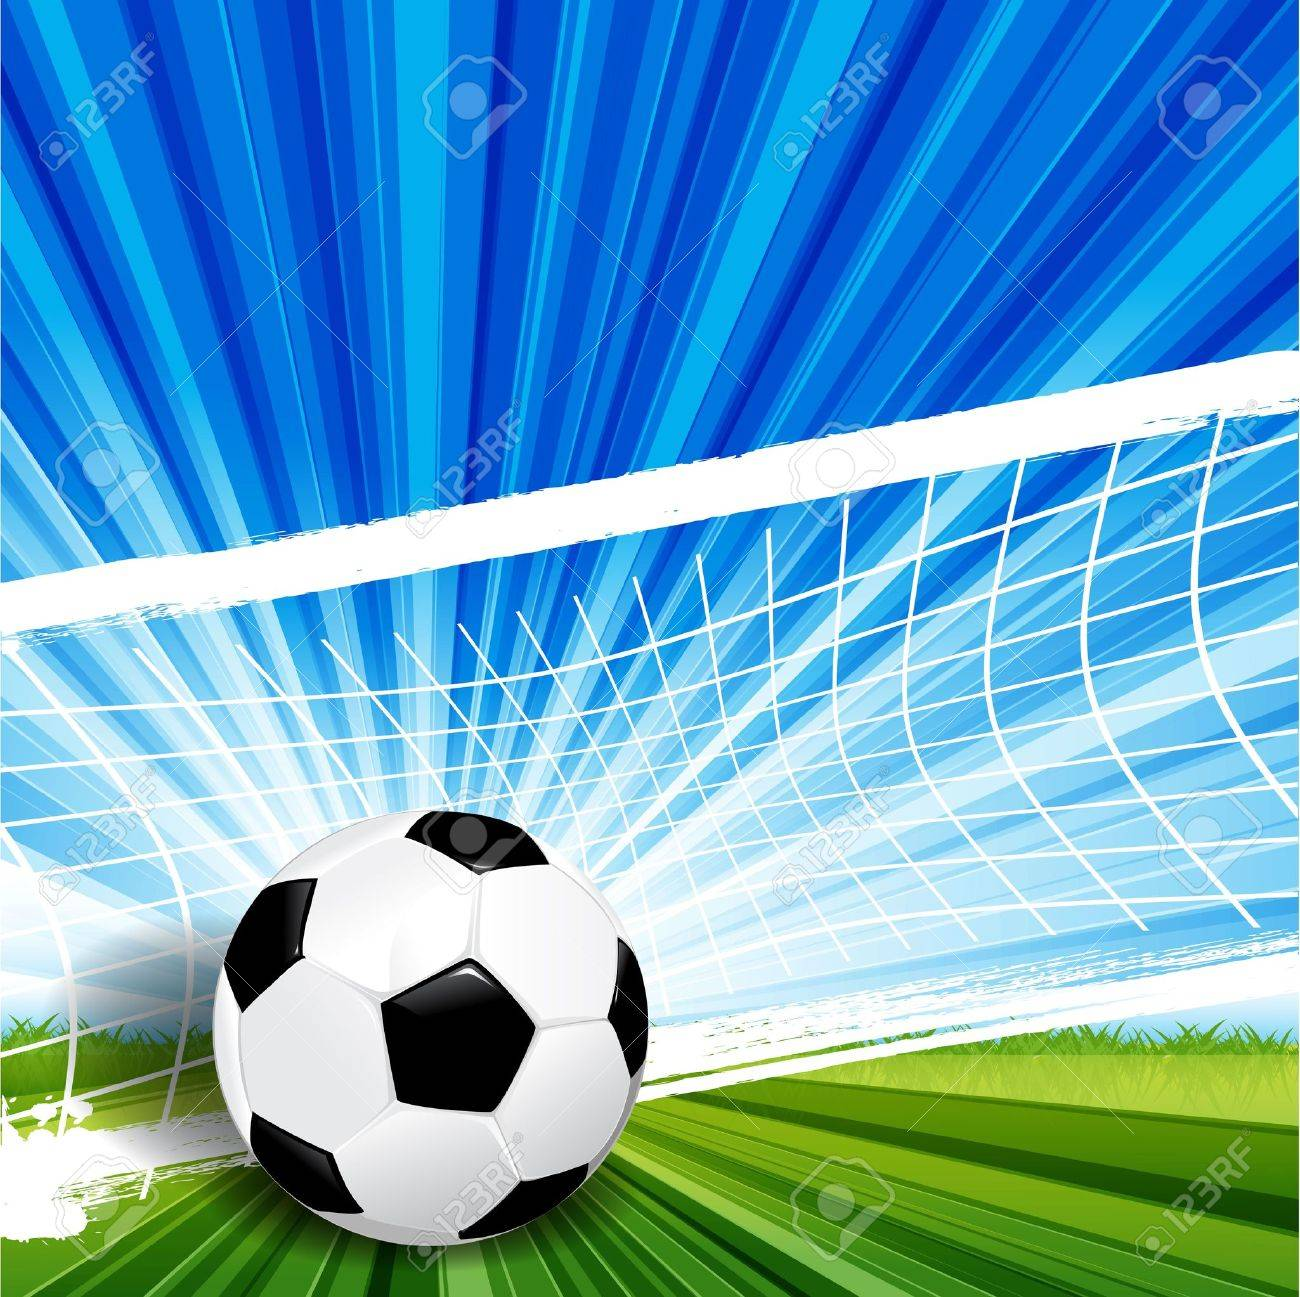 Illustration, leather soccer ball on green herb - 10084210